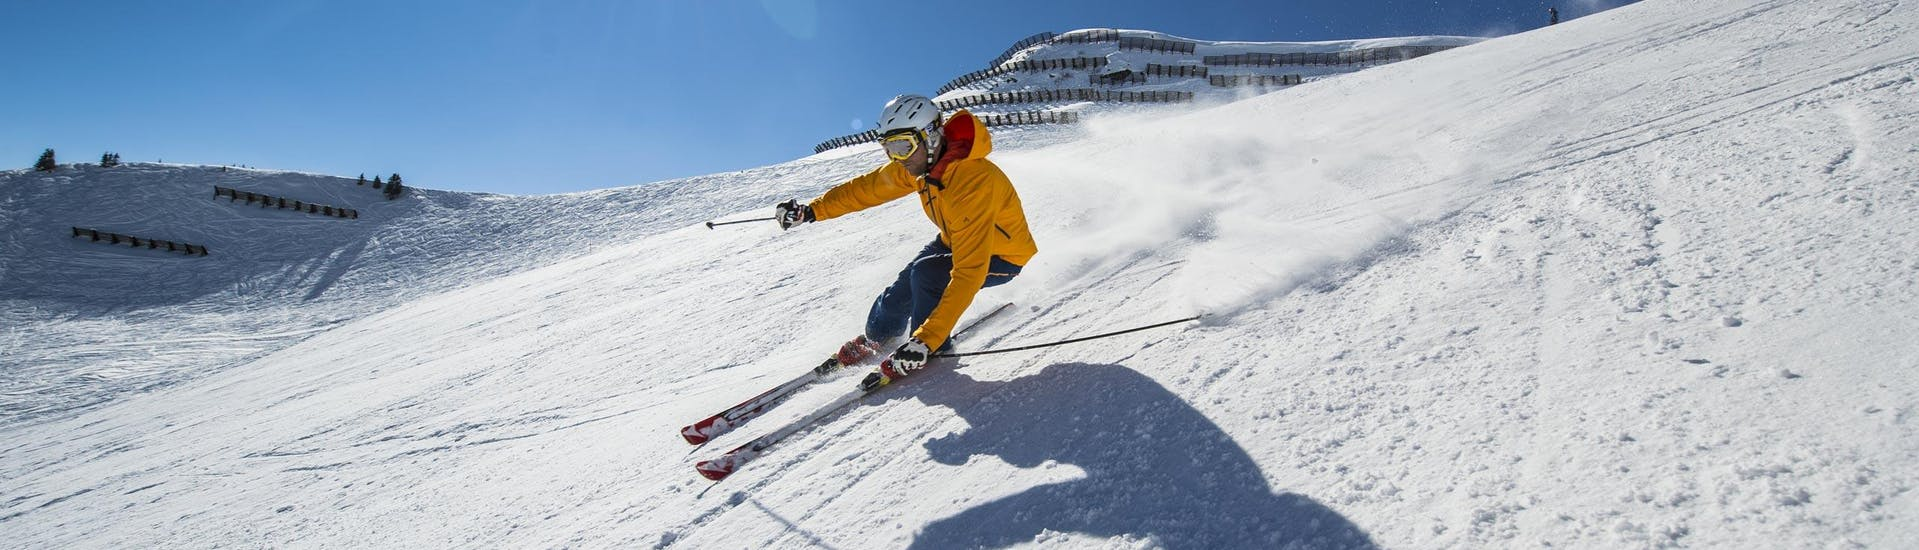 Adult Ski Lessons for Beginners: A skier is skiing down a sunny ski slope while participating in an activity offered by Skischule Warth.